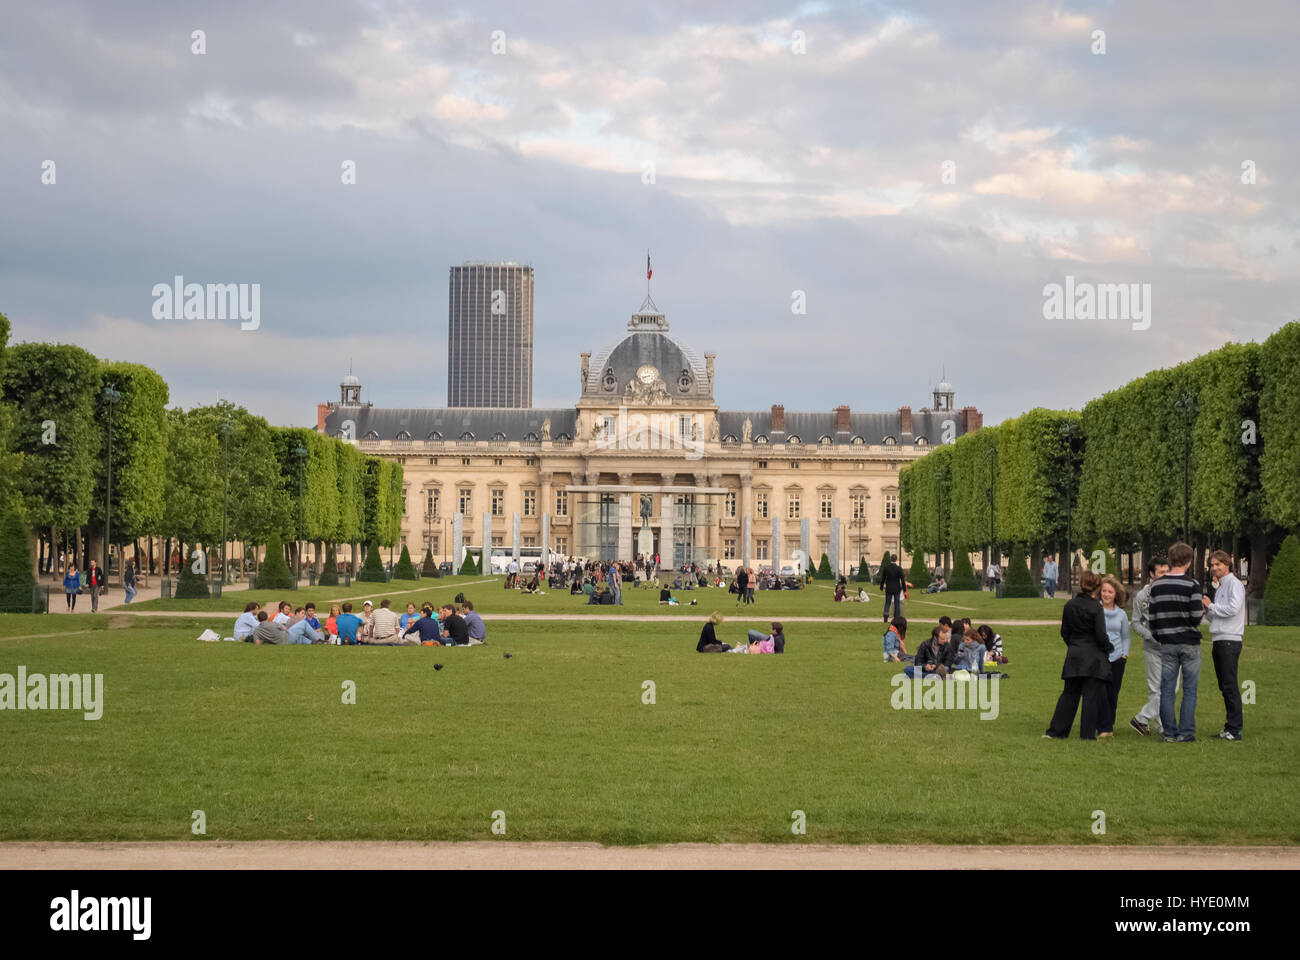 PARIS, FRANCE, June 18: Parisians and guests of the city rest on the lawn of the Champs de Mars on 18 June 2012. - Stock Image